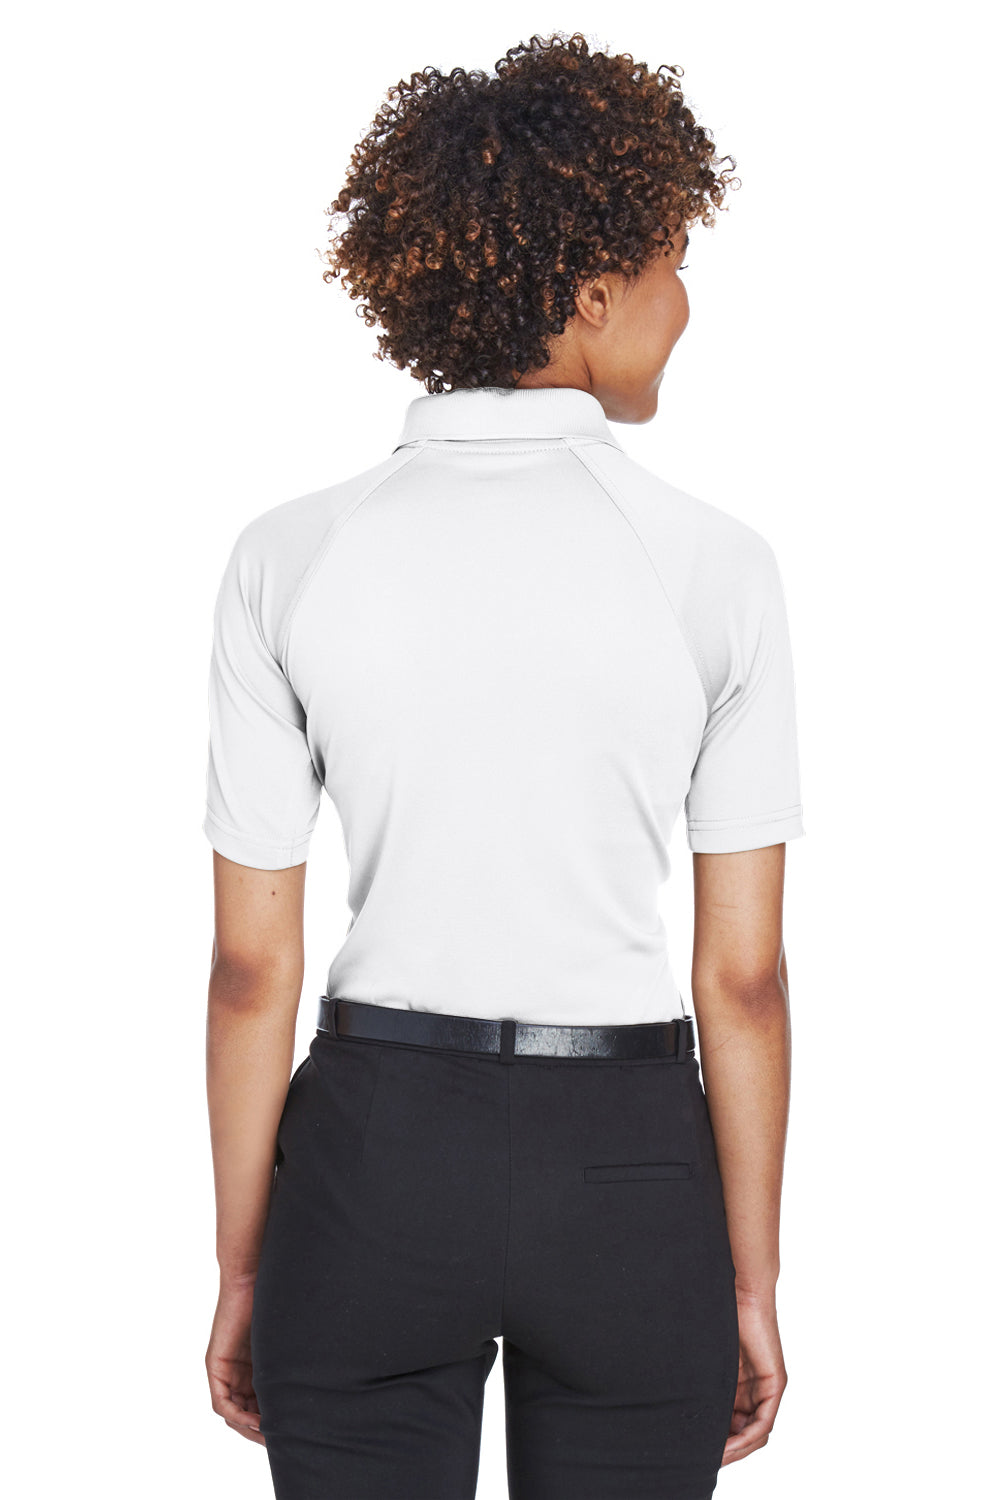 Harriton M211W Womens Advantage Tactical Moisture Wicking Short Sleeve Polo Shirt White Back